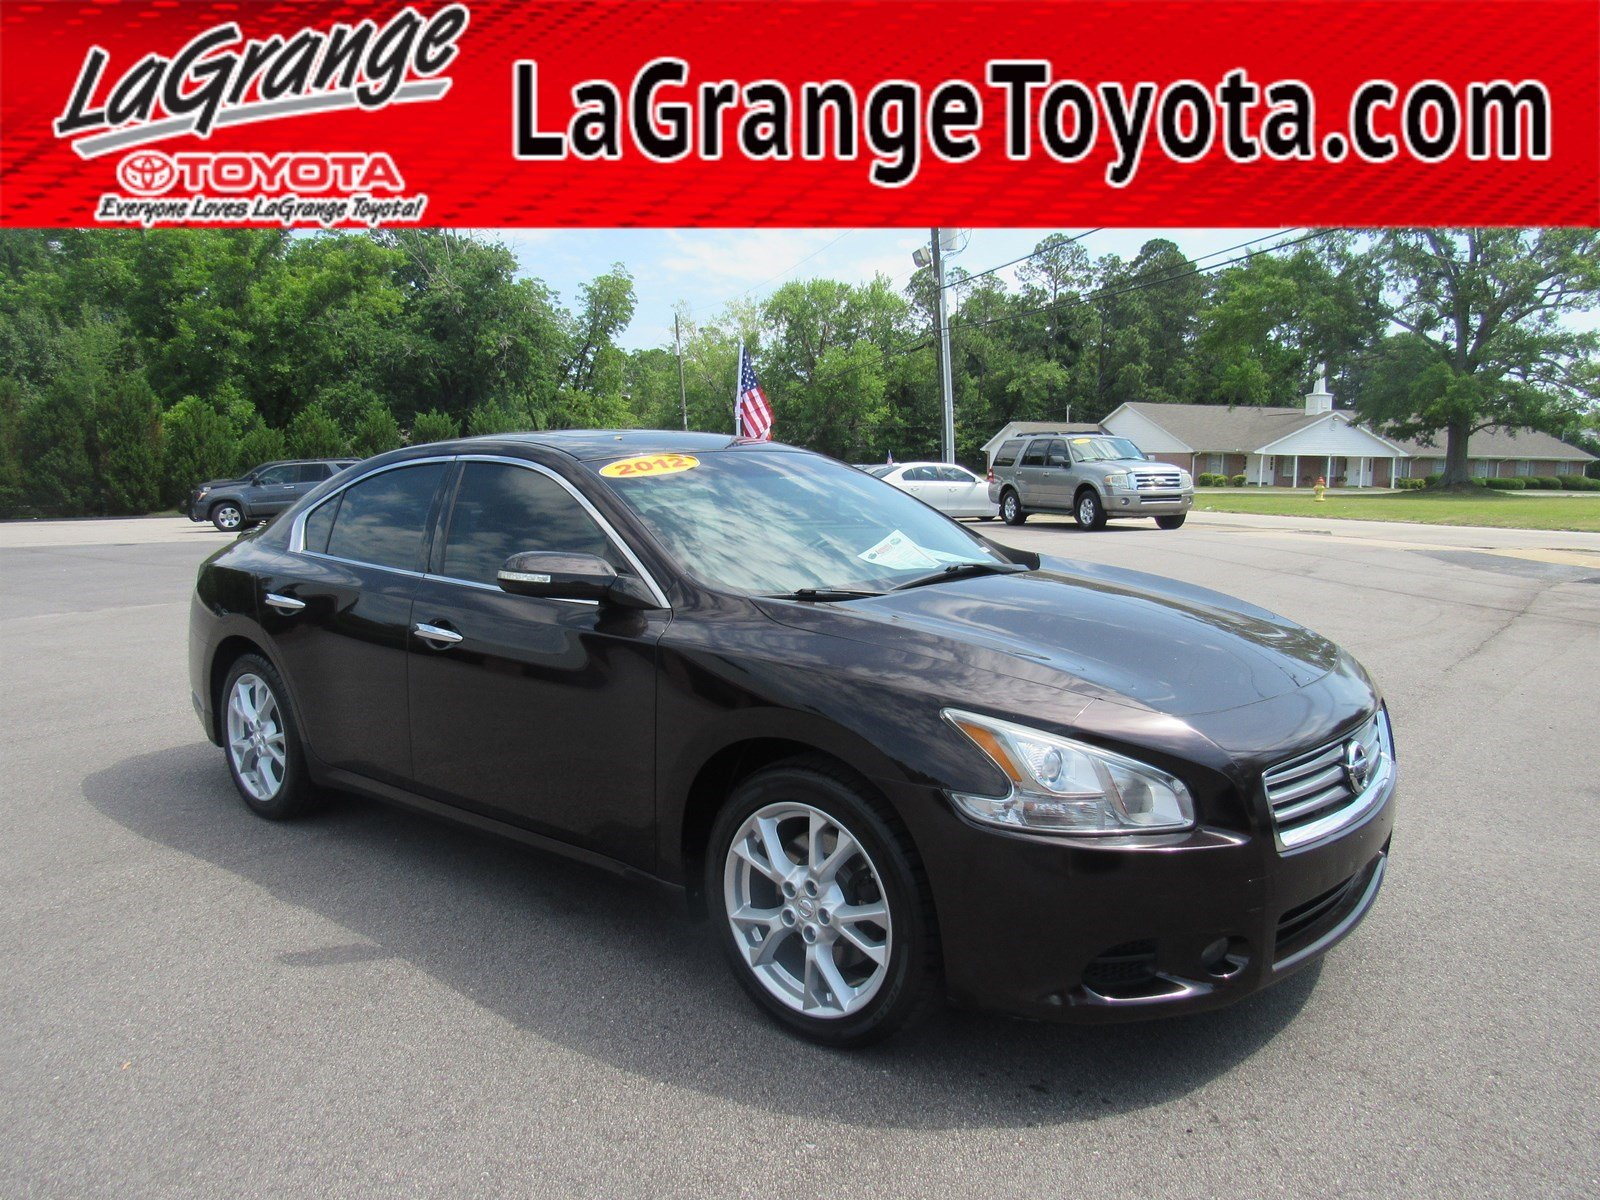 Pre-Owned 2012 Nissan Maxima 4dr Sdn V6 CVT 3.5 SV